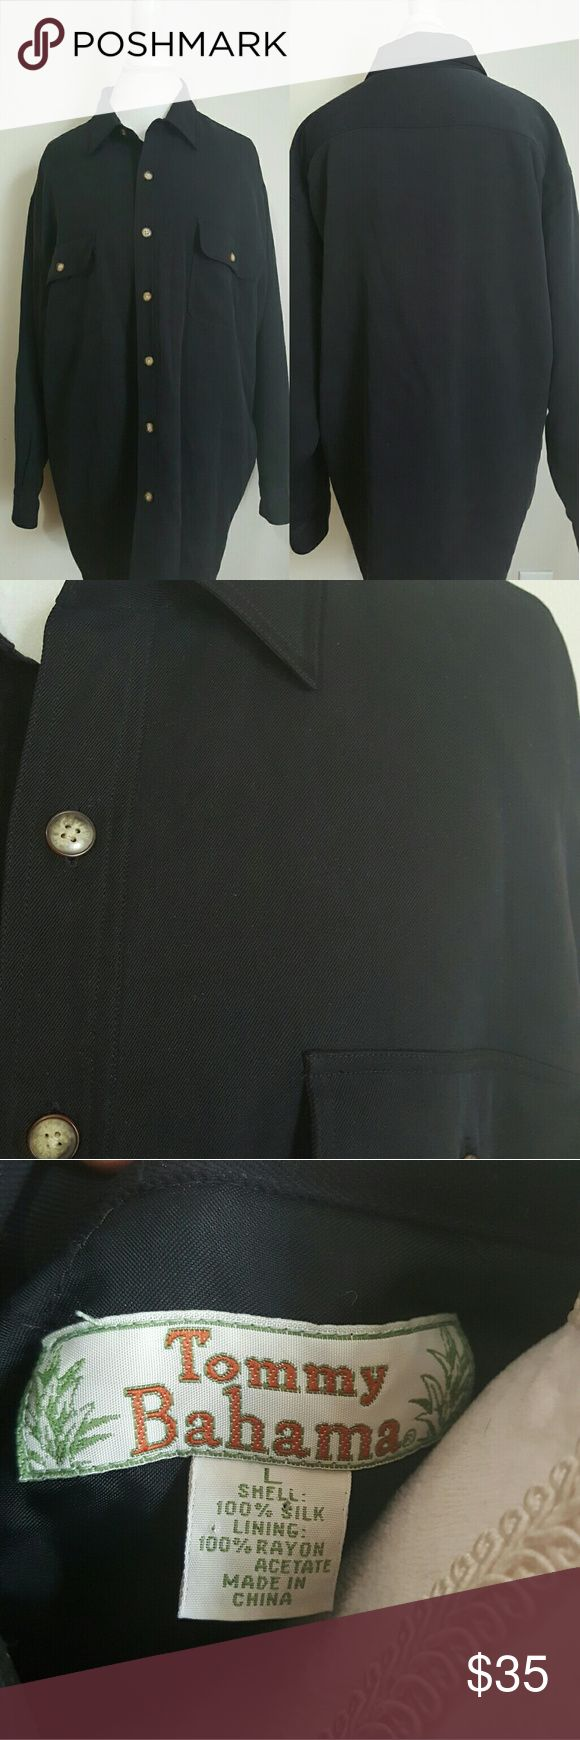 TOMMY BAHAMA 100% SILK, QUILTED BUTTON DOWN Gently worn 100 %Silk, quilted, black, Tommy Bahama button down. Size Large.( appears to run big, measurements included).  ✔25' Armpit to Armpit  ✔32' Length  ✔ Condition: Gently Worn Still in good condition. Tommy Bahama Shirts Casual Button Down Shirts